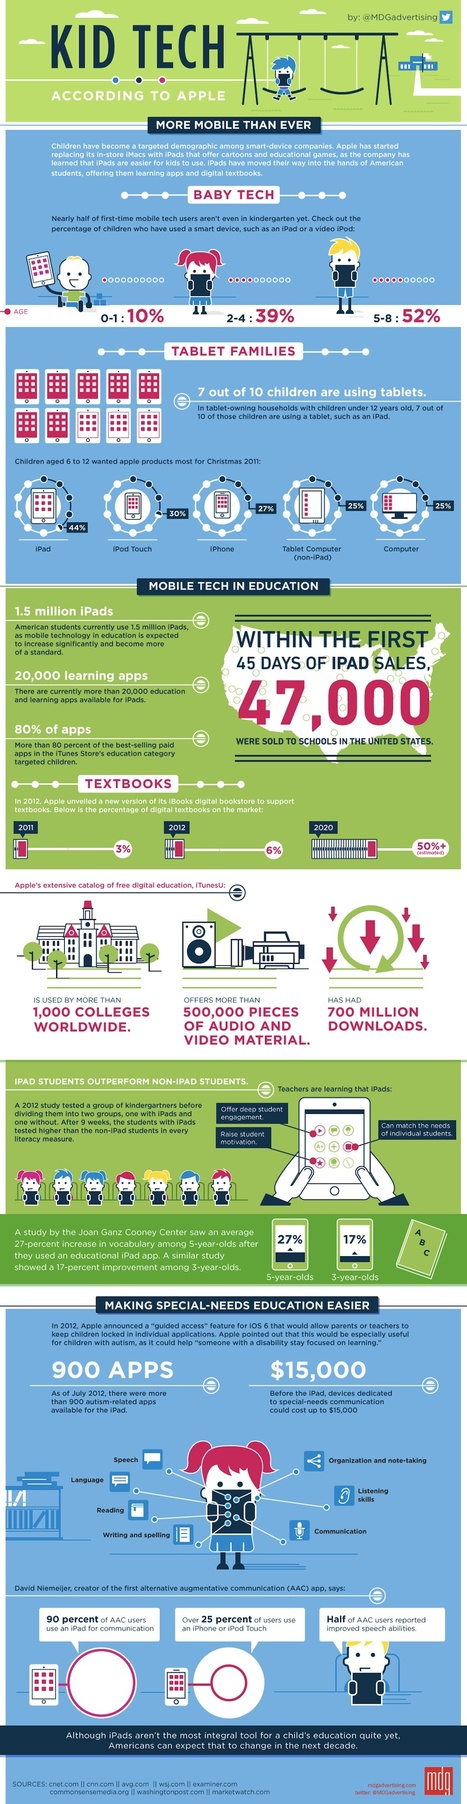 Kids Go Gaga Over Tablets [INFOGRAPHIC] | Mindfulness and Spirituality | Scoop.it